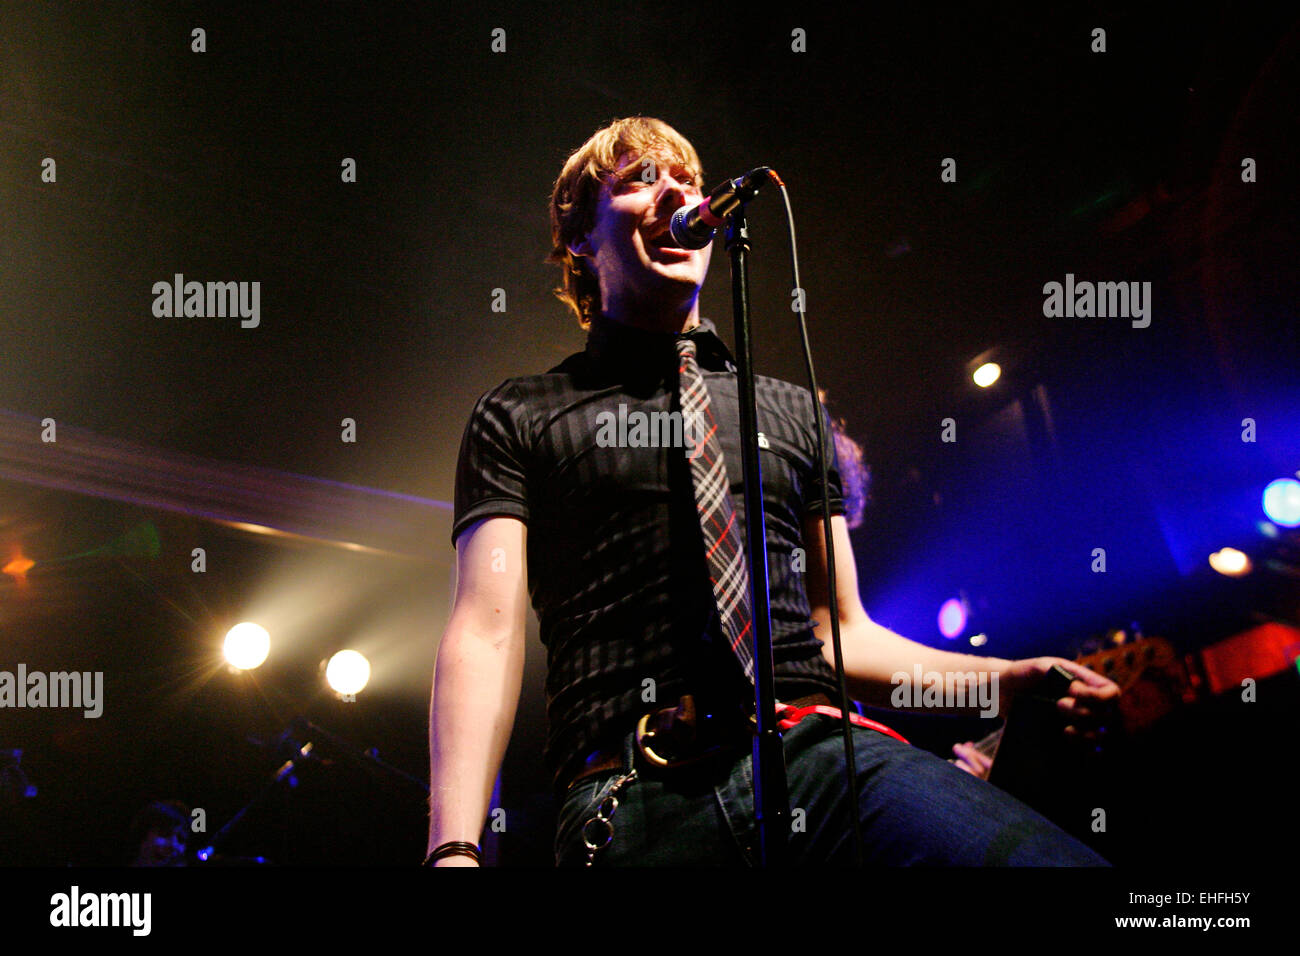 The Kaiser Chiefs live at Club NME at Koko in Camden London. - Stock Image